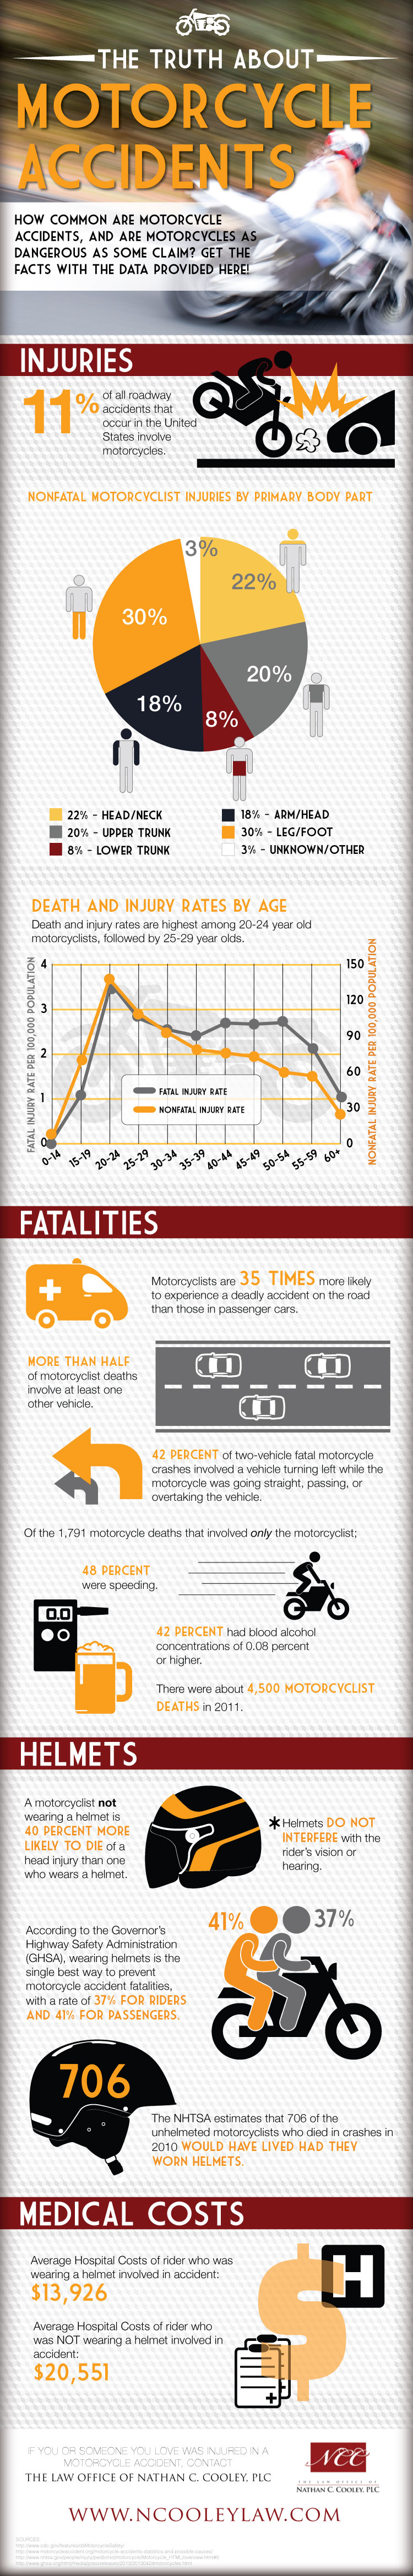 The Truth About Motorcycle Accidents